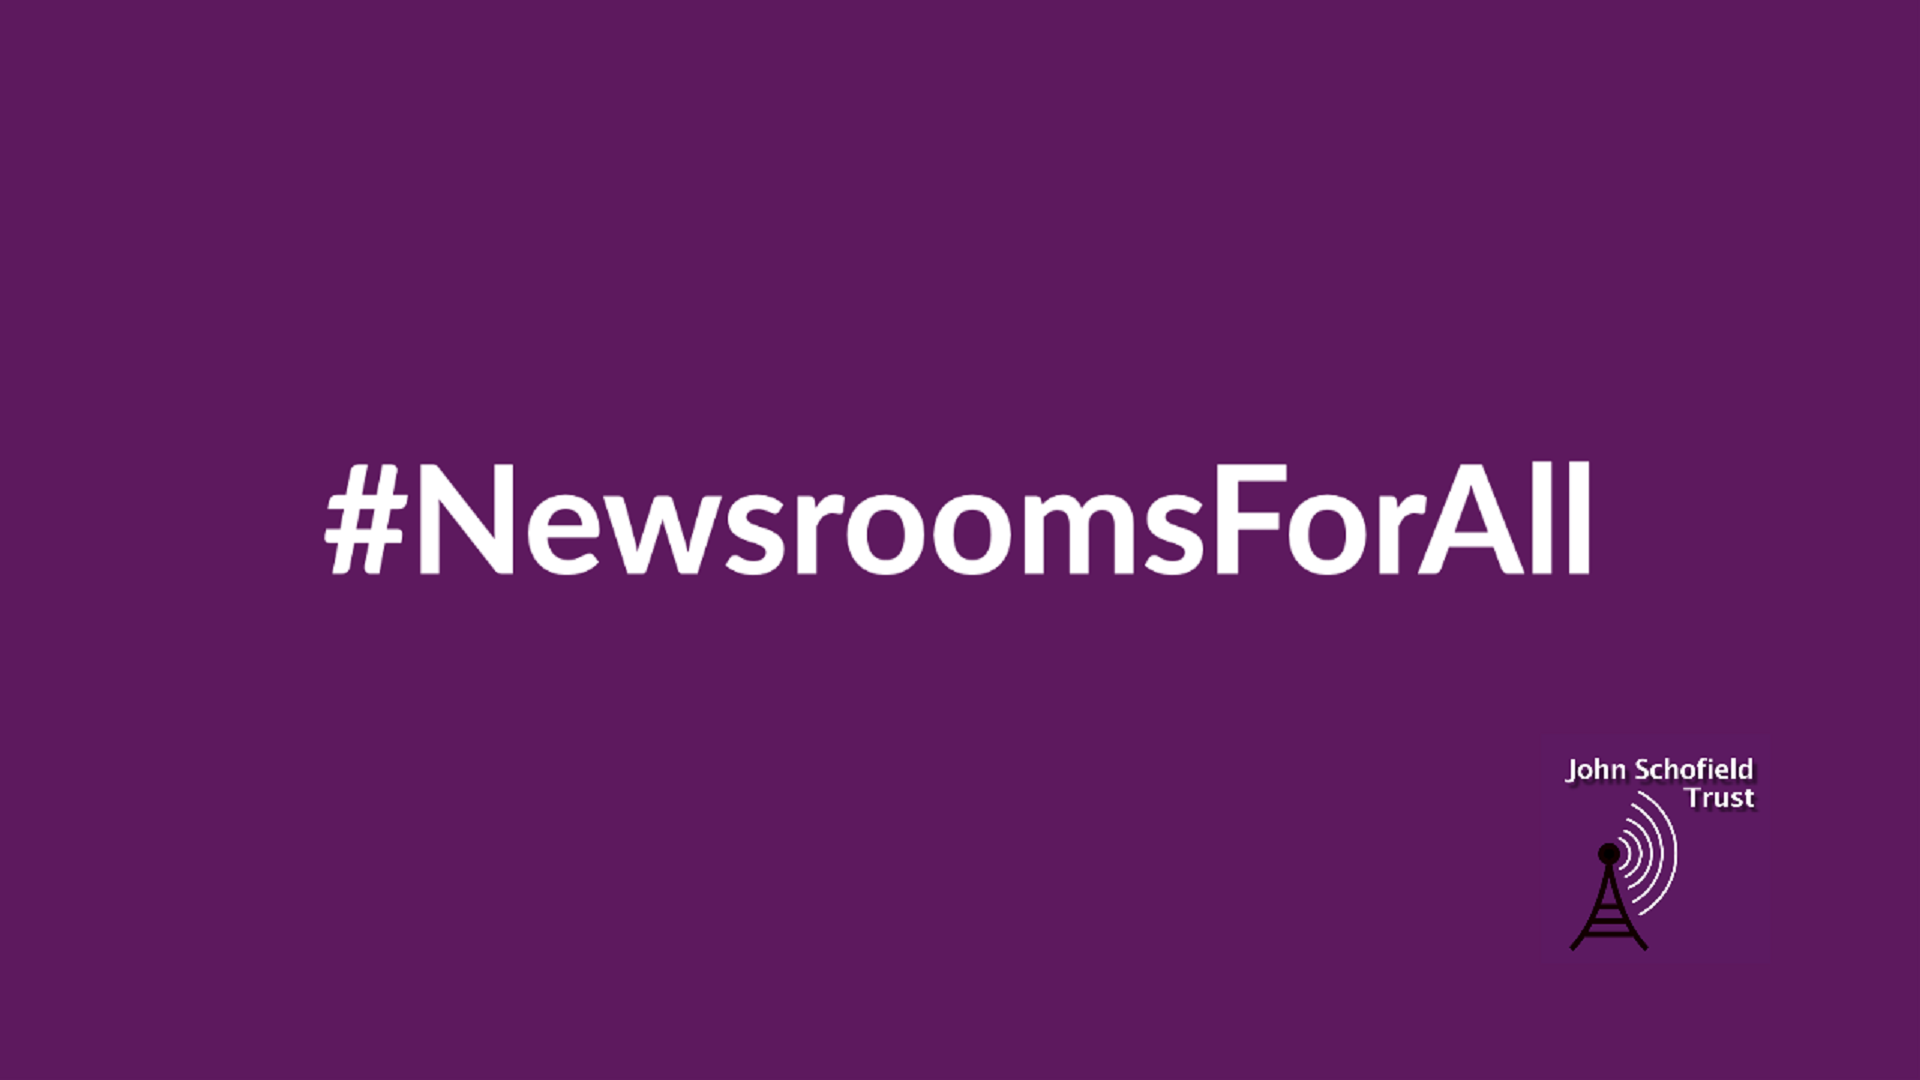 Our #NewsroomsForAll fundraiser